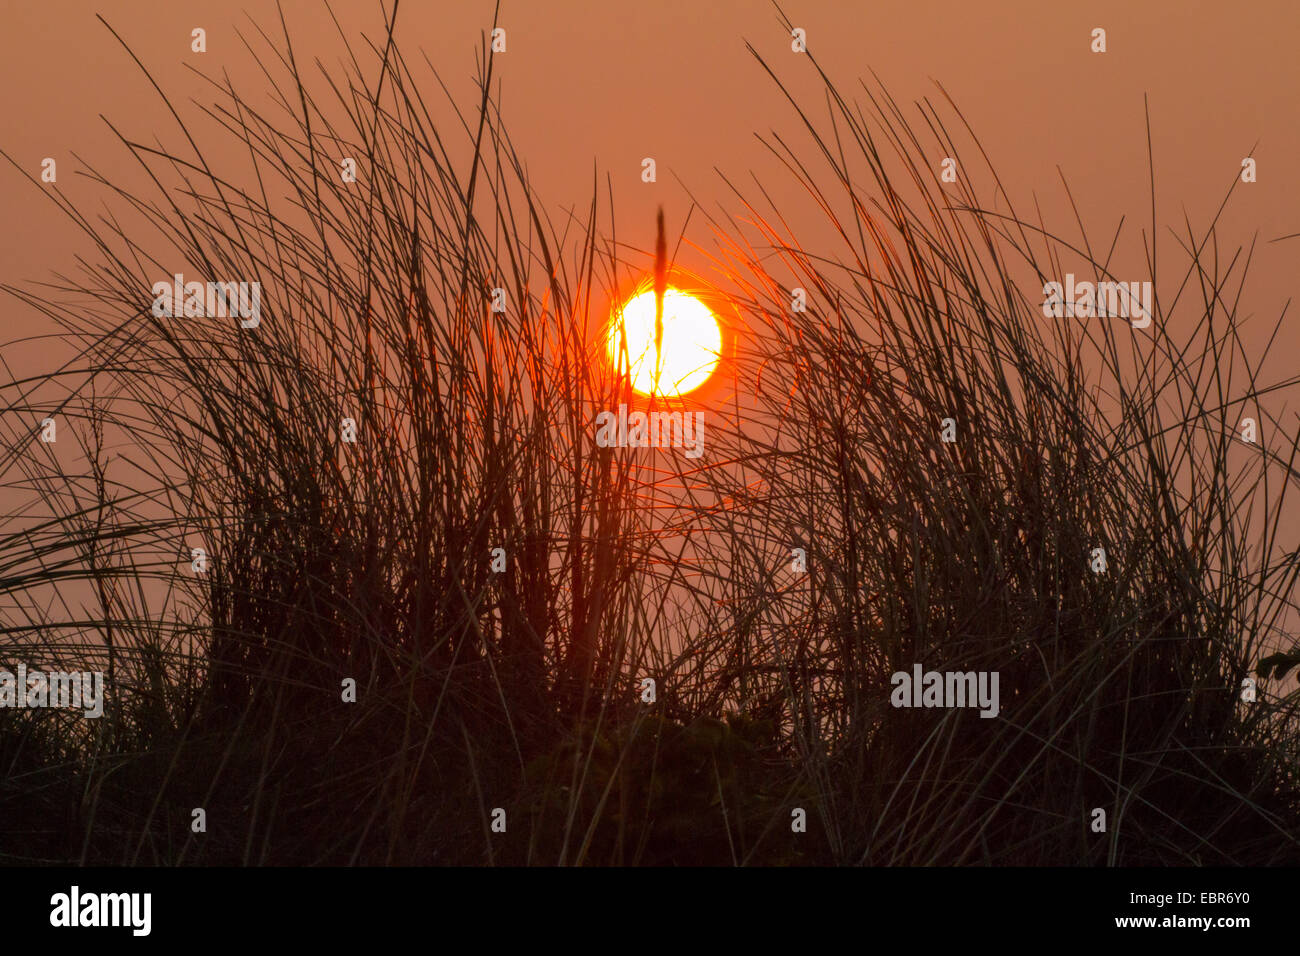 dune grass in front of sunset, Germany, Lower Saxony, Spiekeroog - Stock Image